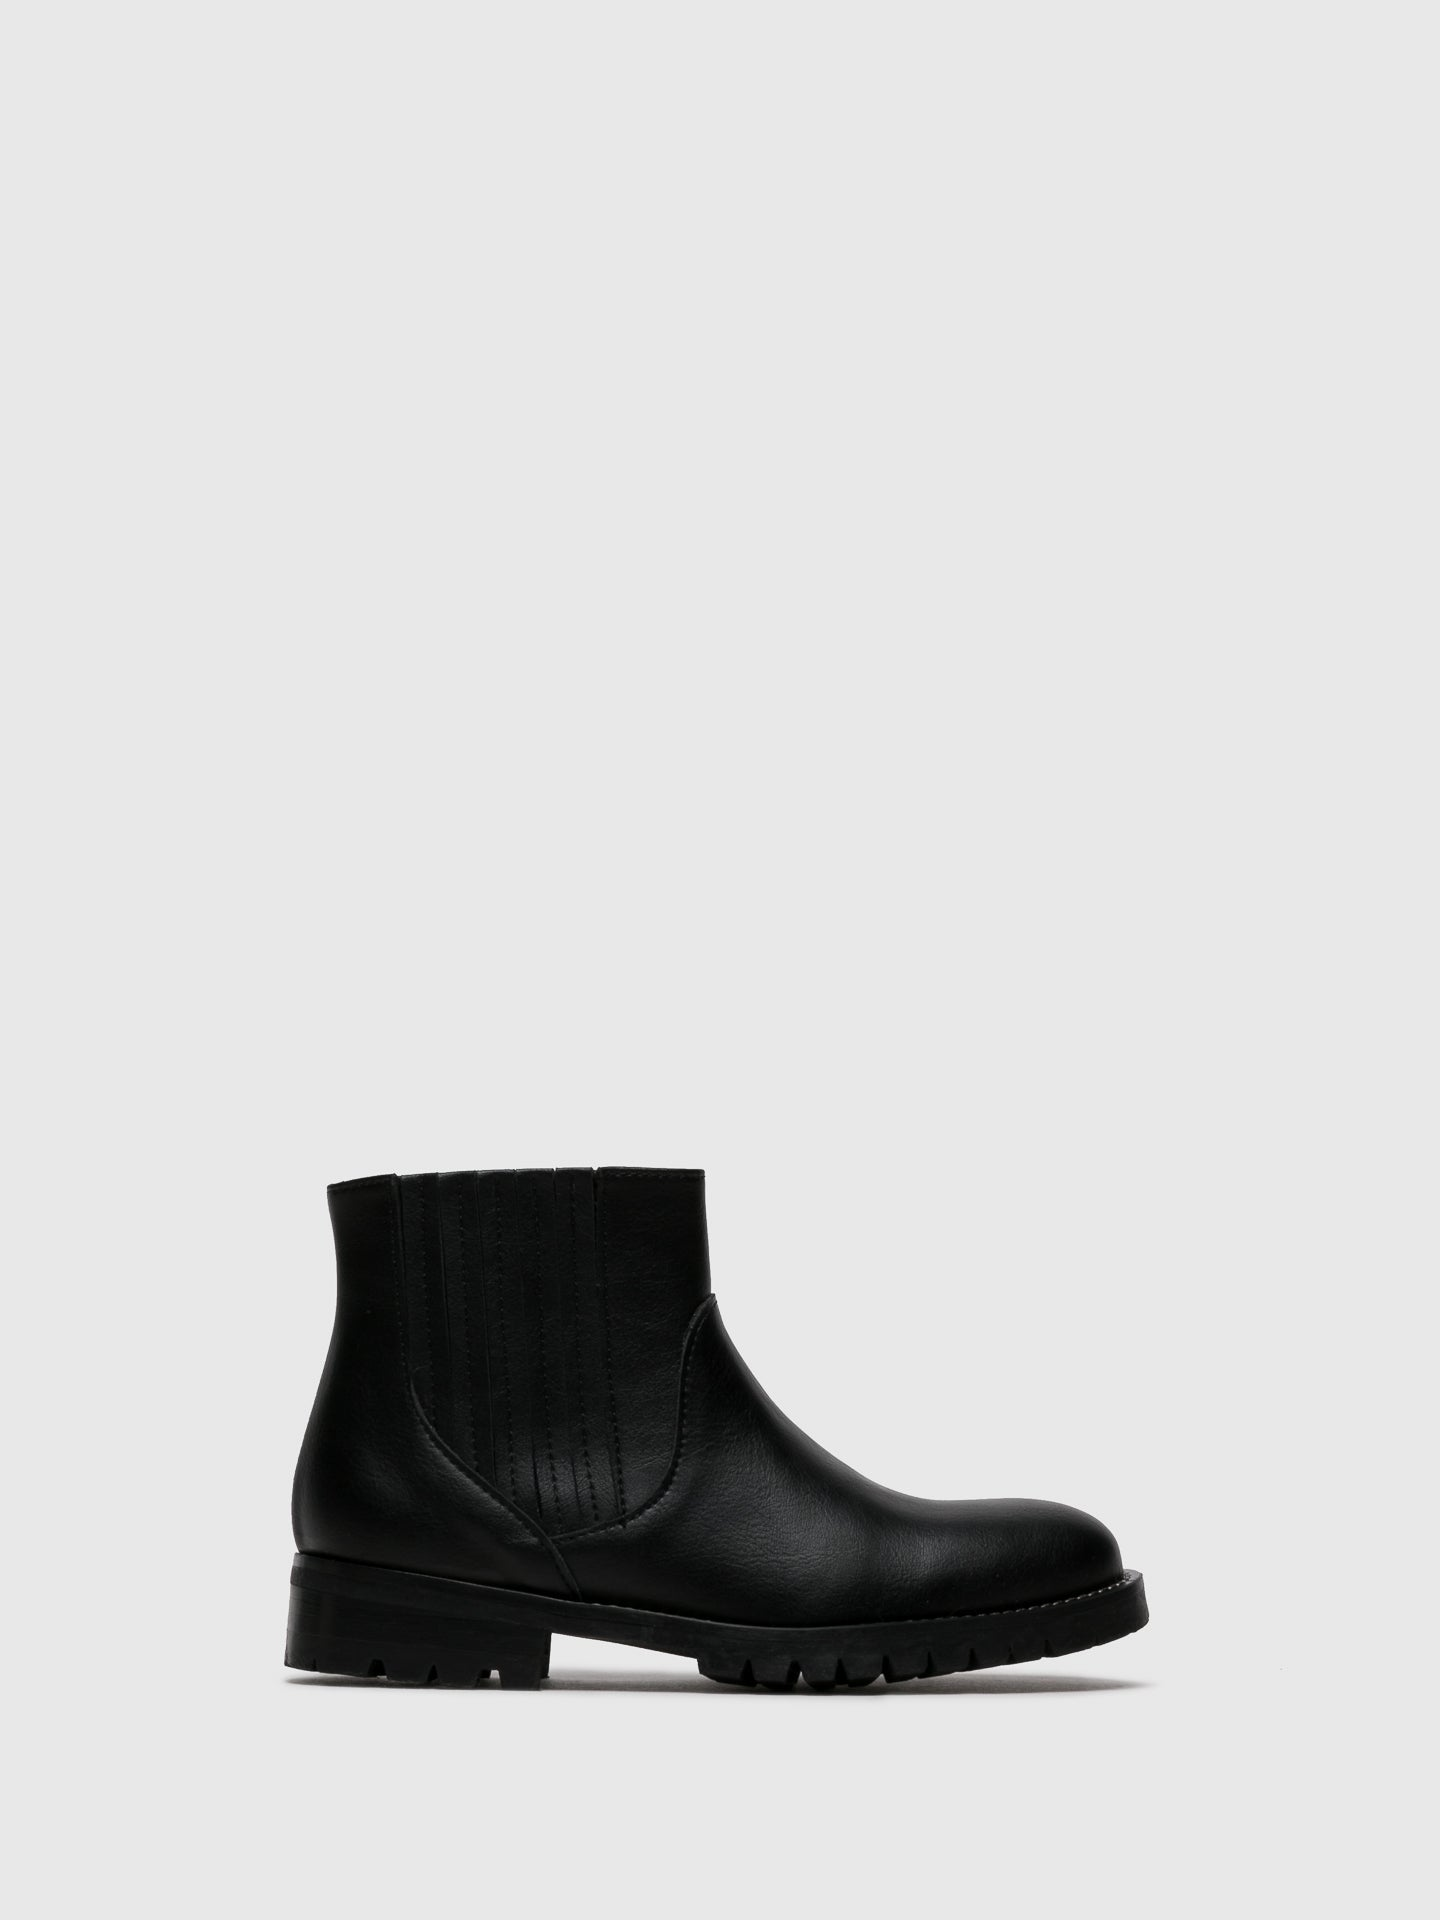 NAE Vegan Shoes Black Elasticated Ankle Boots